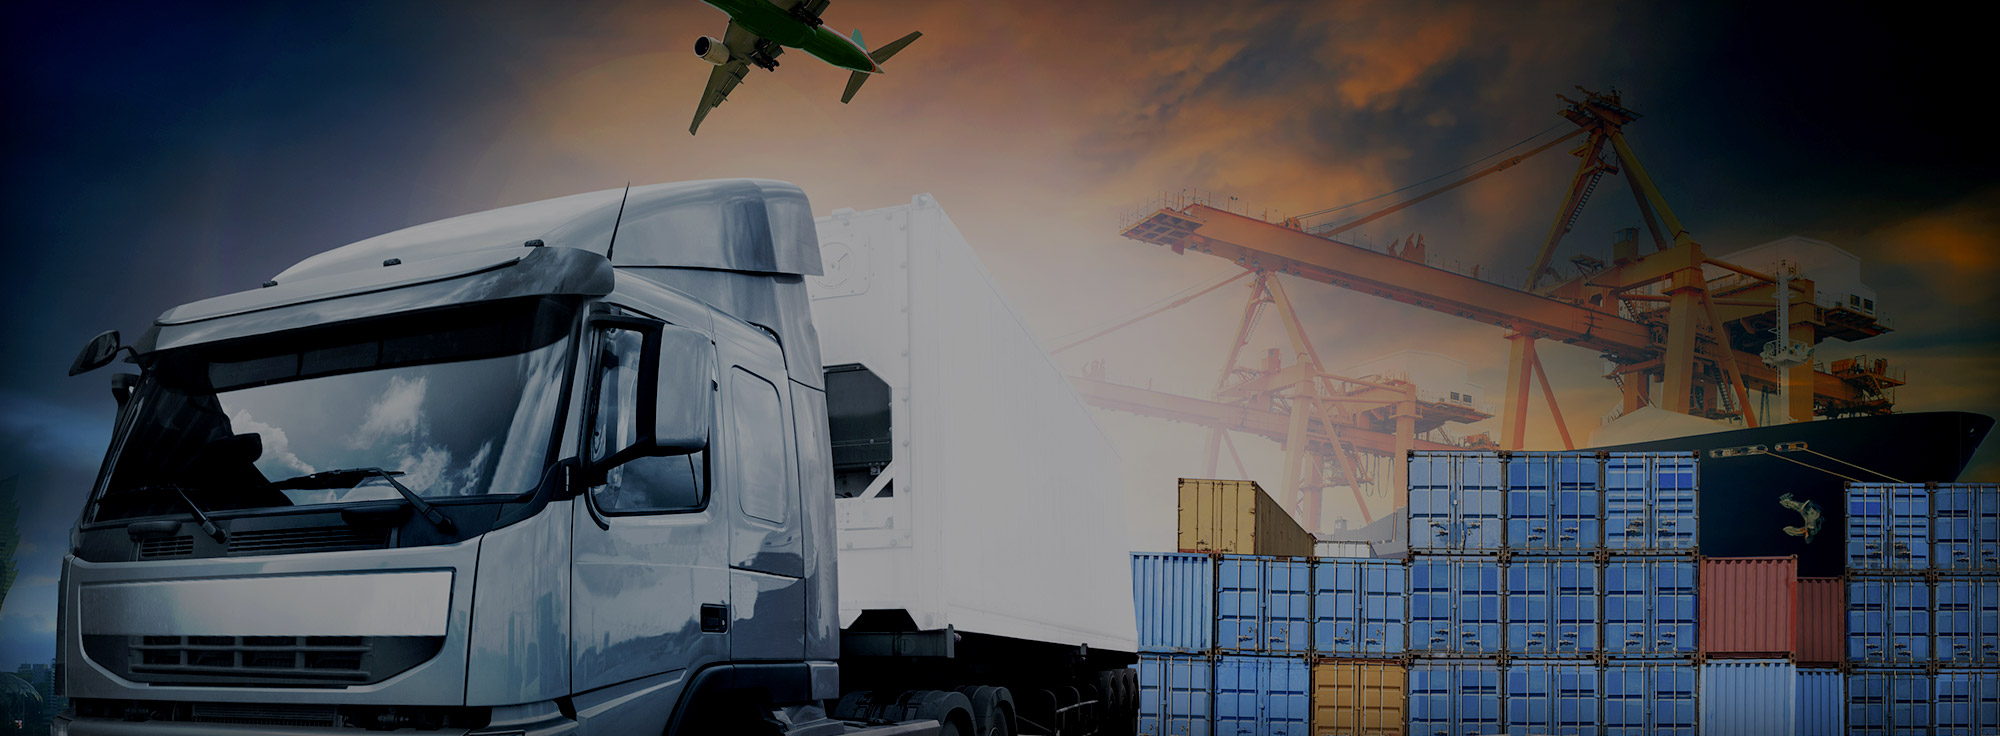 Container Truck, Ship In Port, And Freight Cargo Plane In Transport